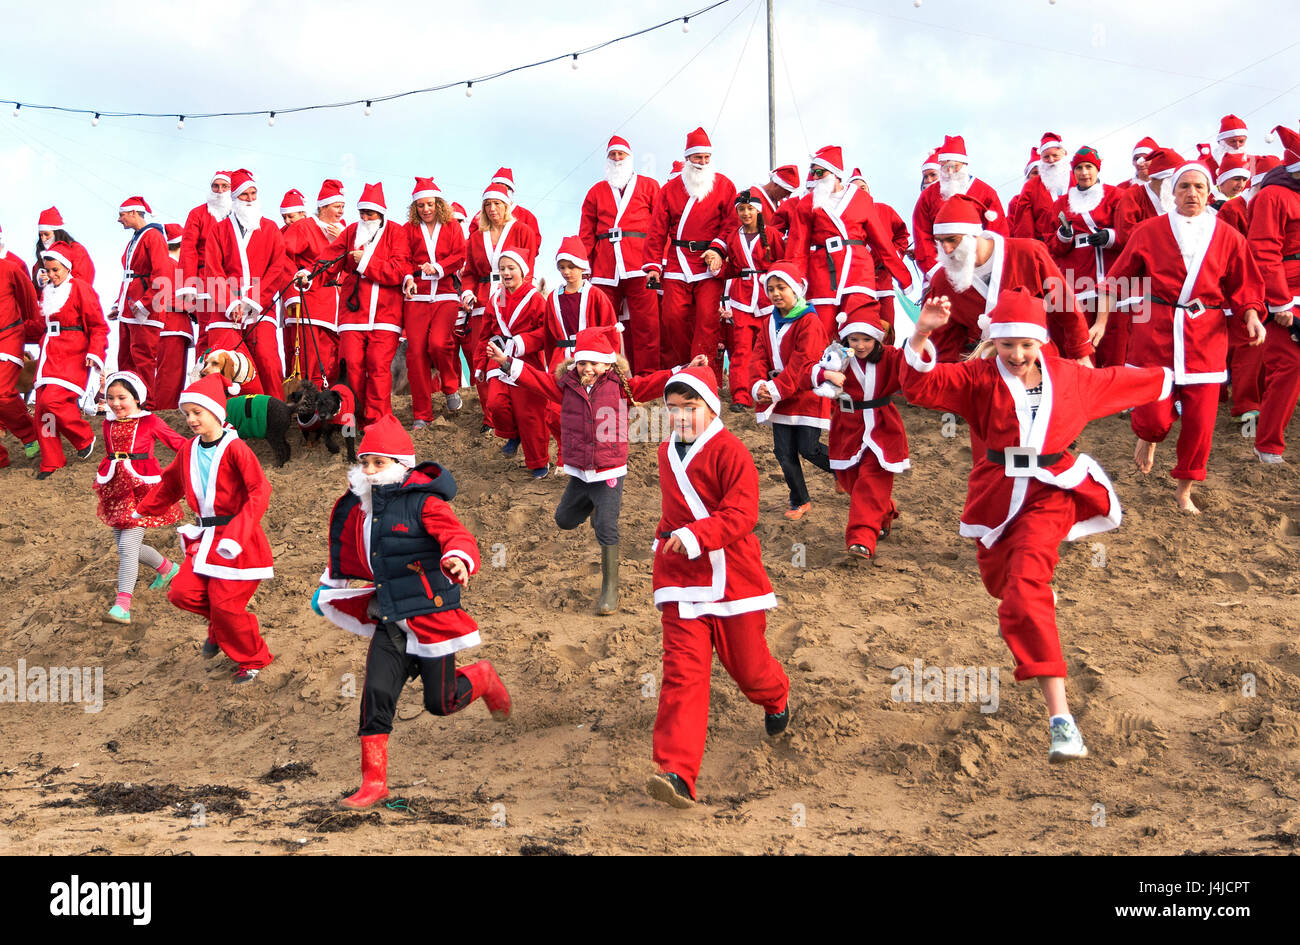 Perranporth, Cornwall, UK. 18th December 2016. Santa's on the sand an annual charity run on Perranporth beach in - Stock Image